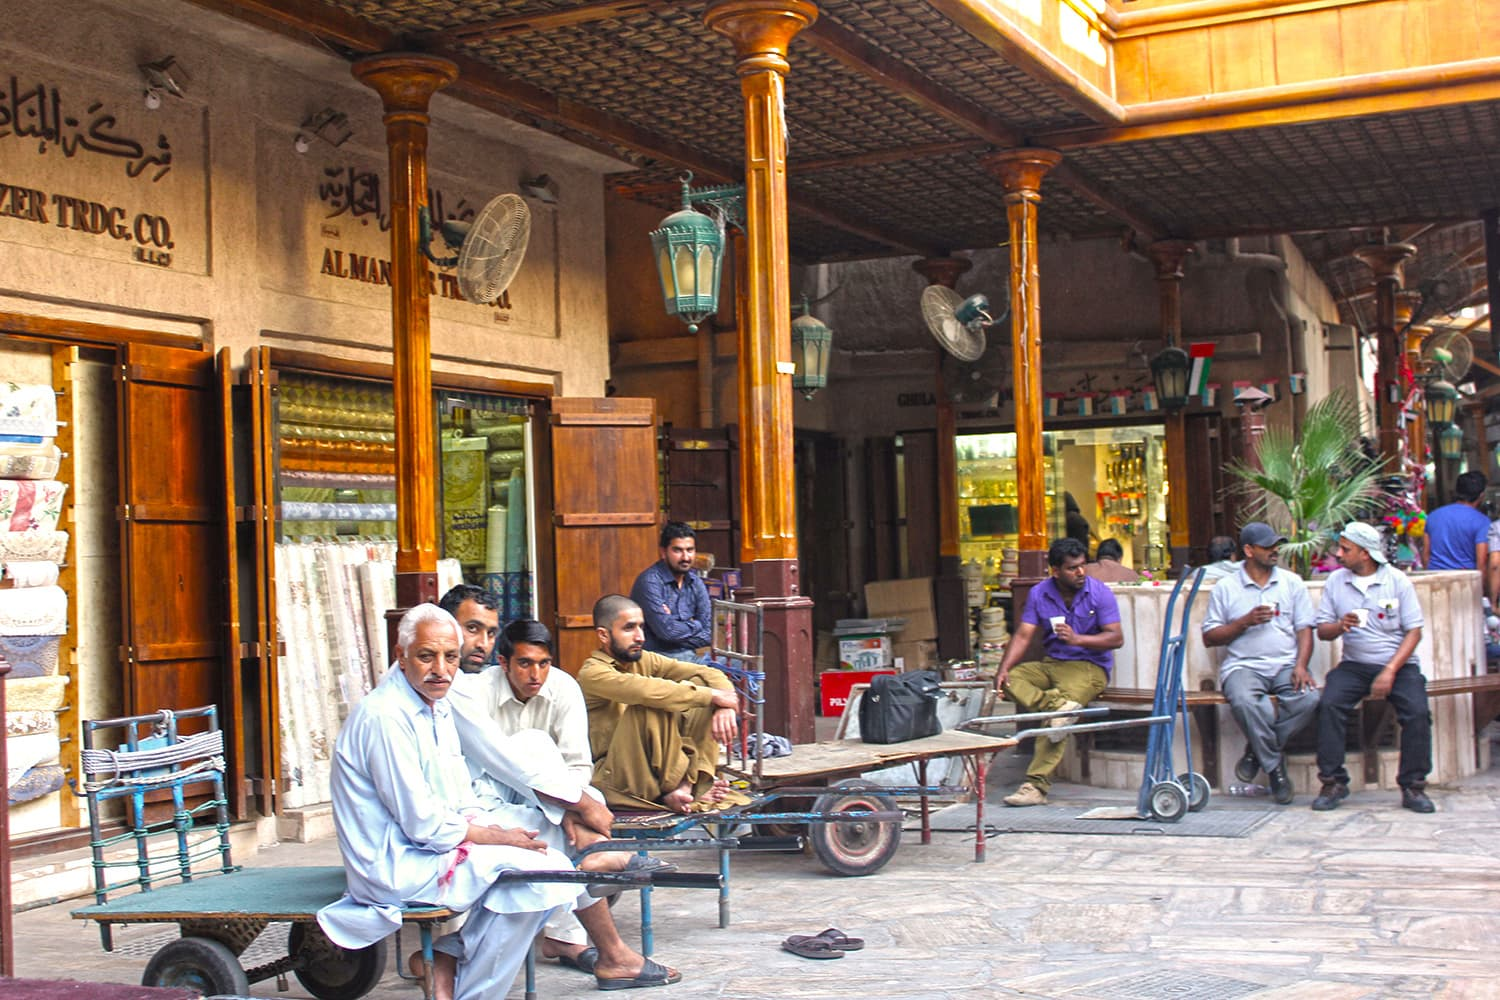 Pakistani and Indian workers socialise and have tea in one of the courtyards of Souk Al Kabeer in the Fahidi district.